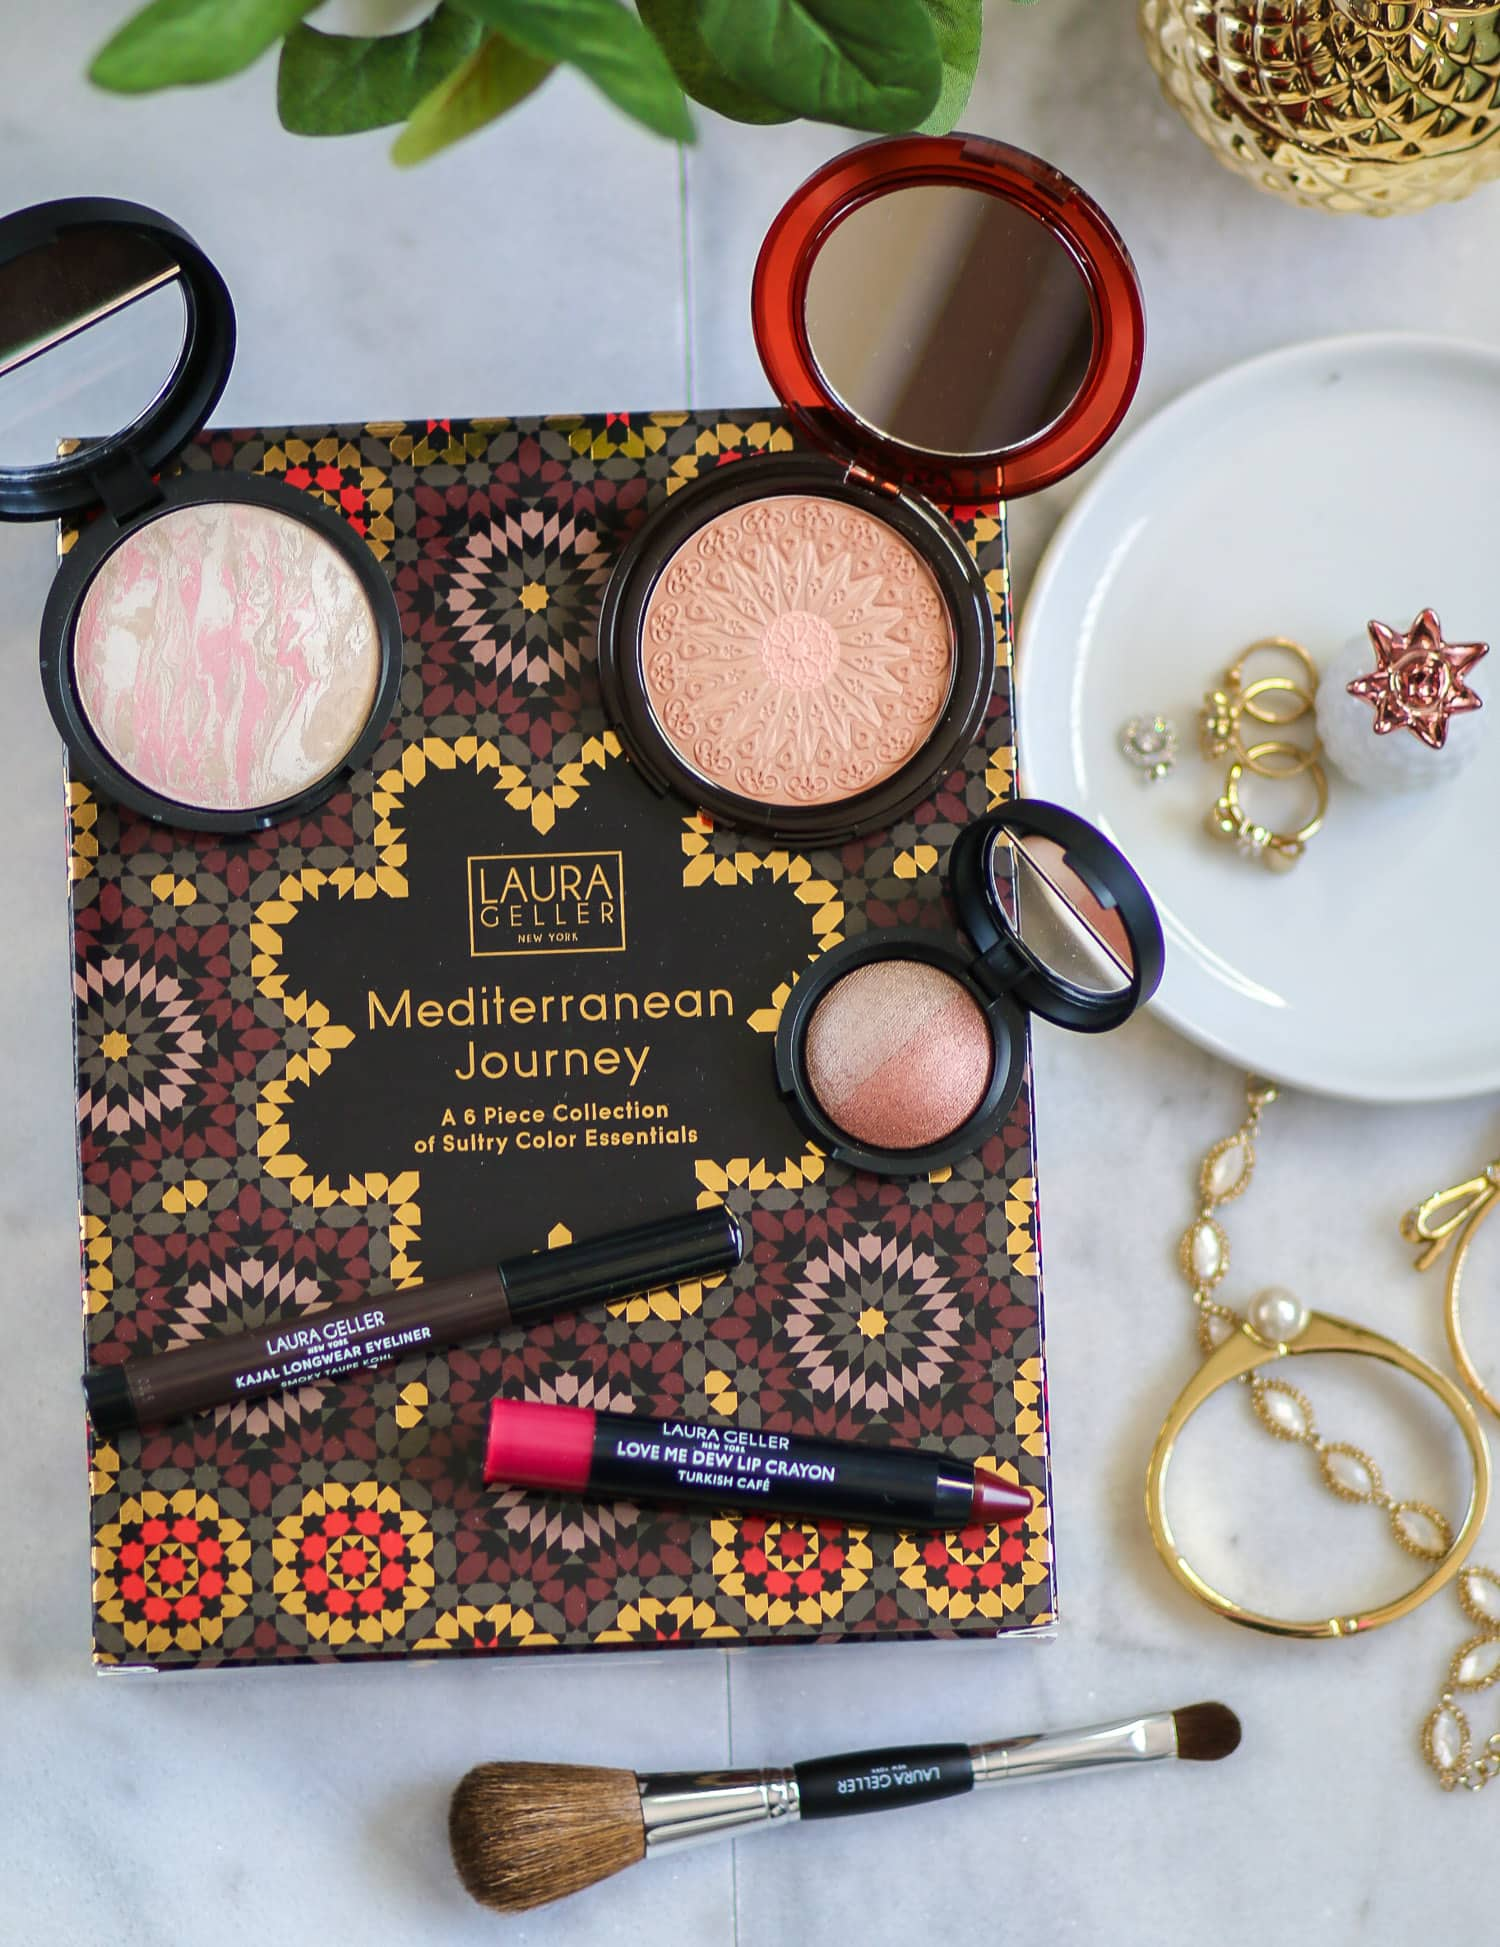 The Laura Geller Mediterranean Journey Collection is so beautiful! The kit includes Baked Balance-N-Brighten, Baked Mediterranean Bronzer in Moroccan Bronze, Baked Color Intense Shadow Duo in Stone/Terracotta, Kajal Eyeliner in Smokey Taupe Kohl, Love me Dew Lip Crayon in Turkish Cafe, brush & a tote. This set comes in 5 different color combinations for every skin tone from light to deep. Click through to see a full review from beauty blogger Ashley Brooke! @laurageller